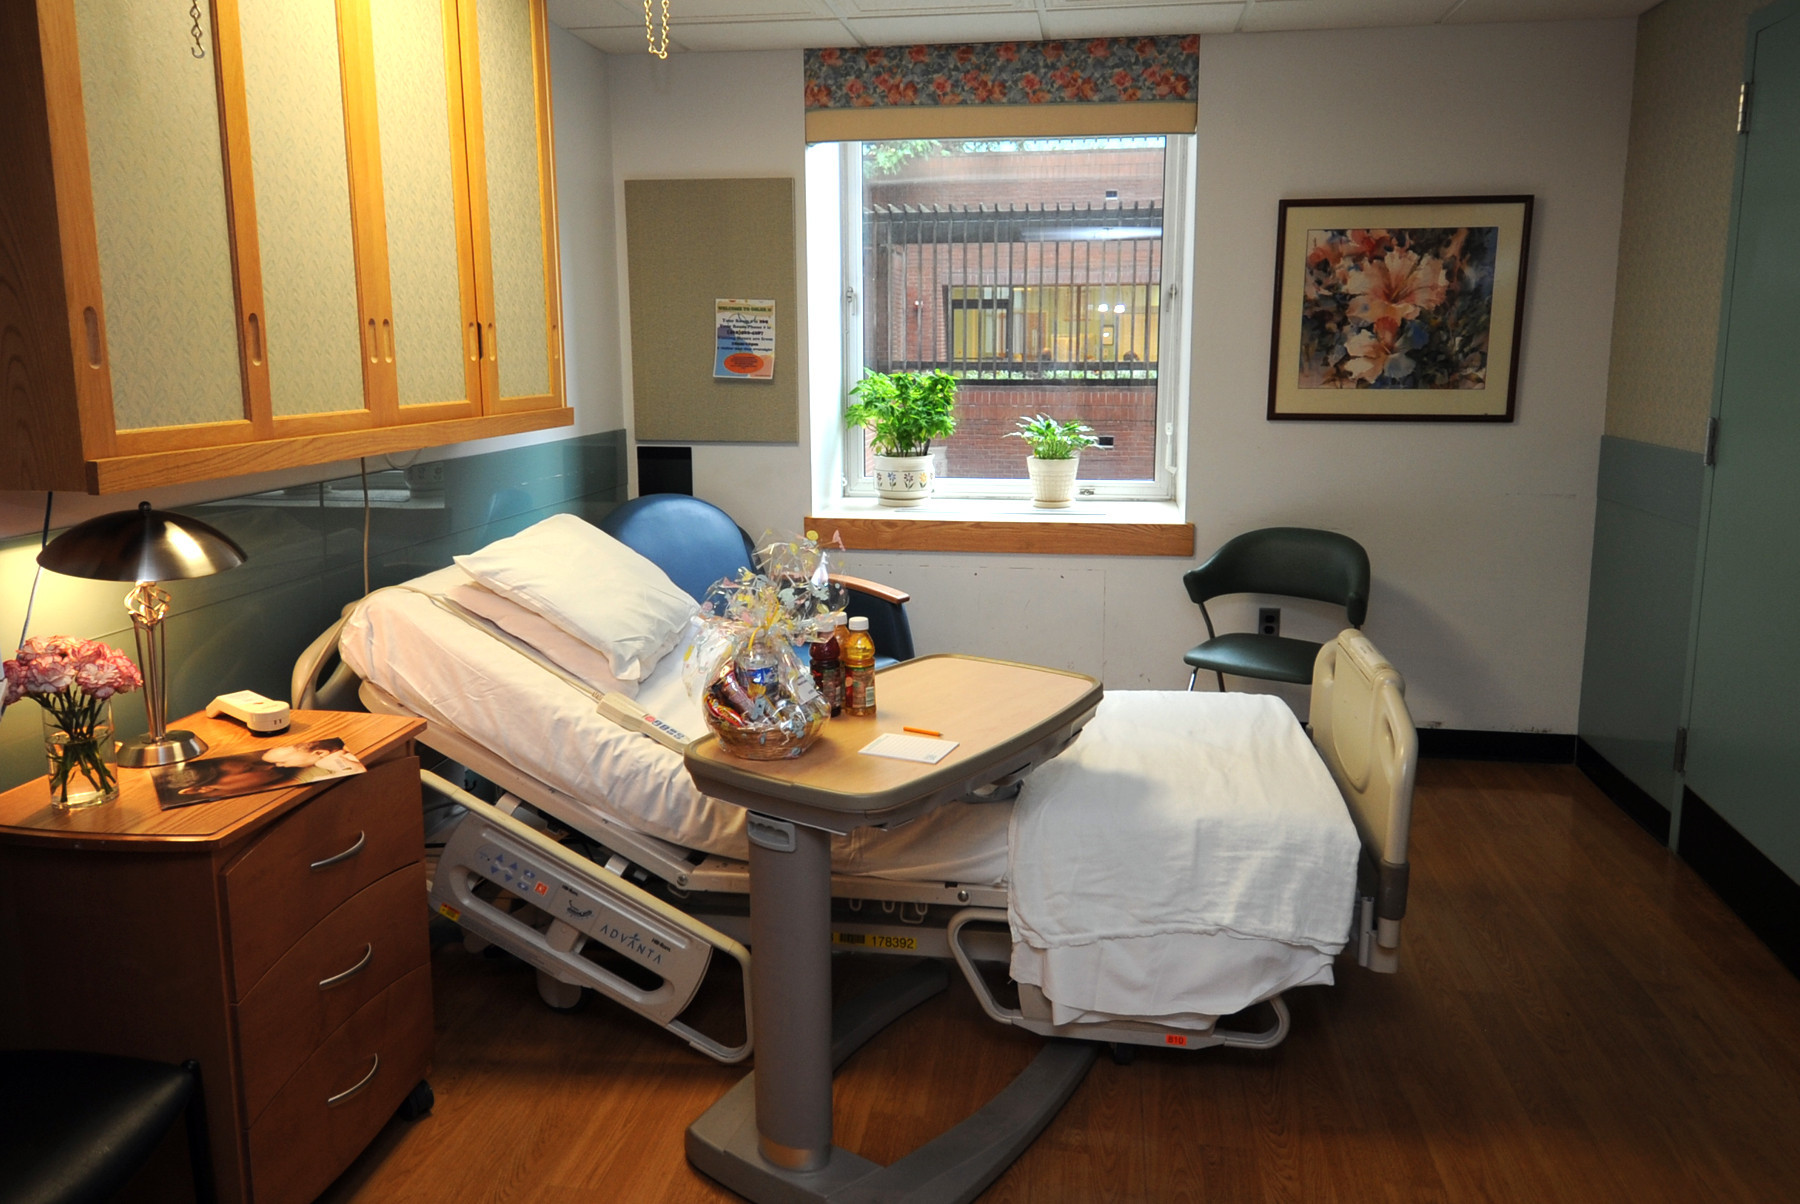 This is a mother/baby postpartum room at the Birthing Center at Johns Hopkins Hospital.